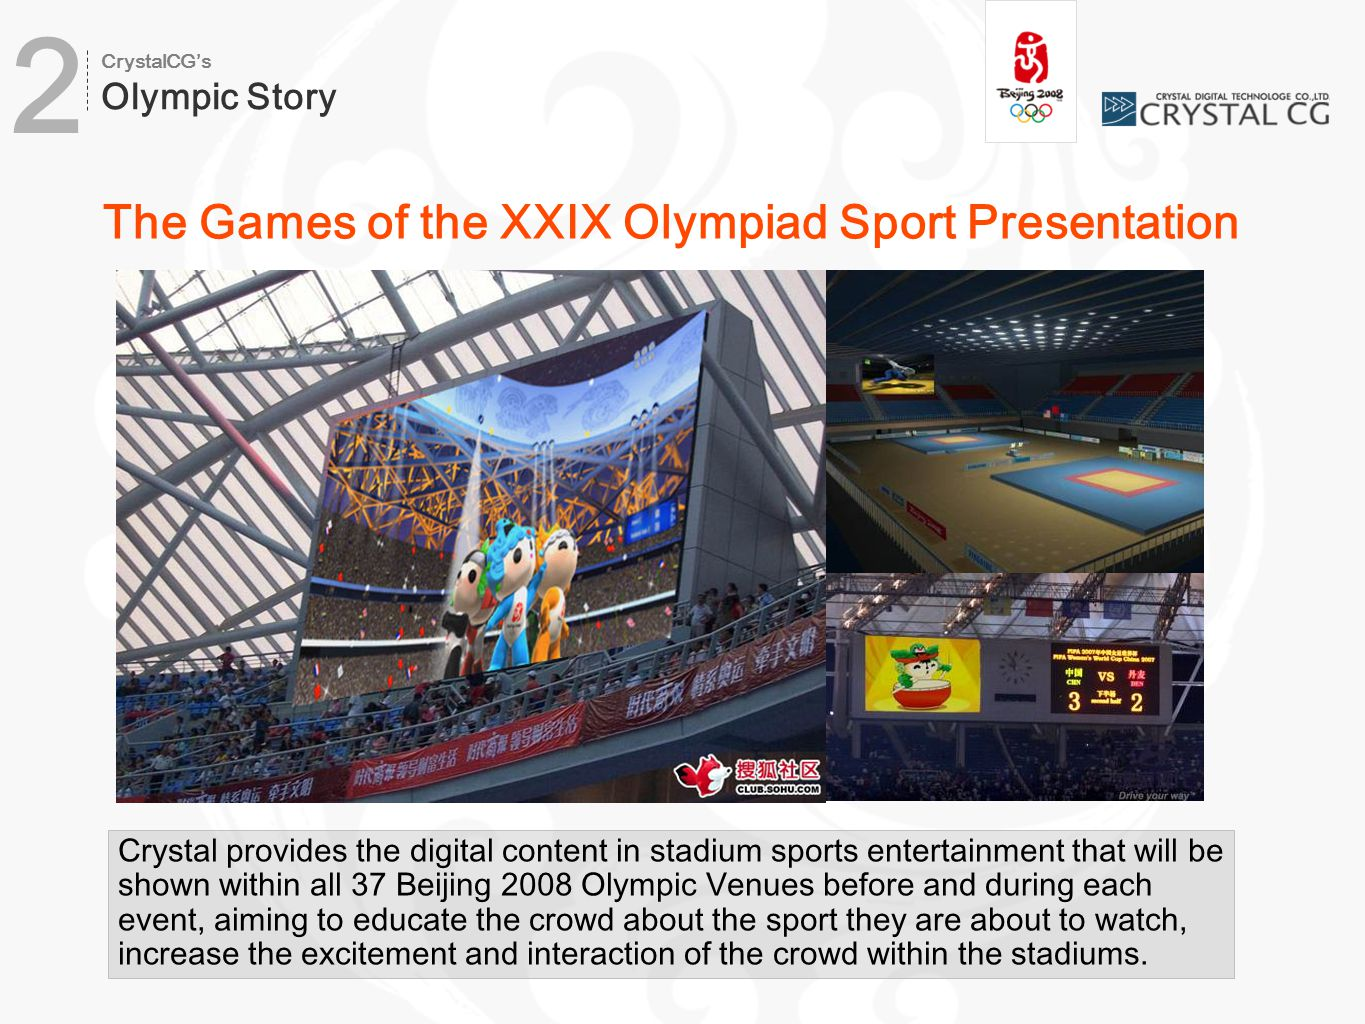 The Games of the XXIX Olympiad Sport Presentation Crystal provides the digital content in stadium sports entertainment that will be shown within all 37 Beijing 2008 Olympic Venues before and during each event, aiming to educate the crowd about the sport they are about to watch, increase the excitement and interaction of the crowd within the stadiums.